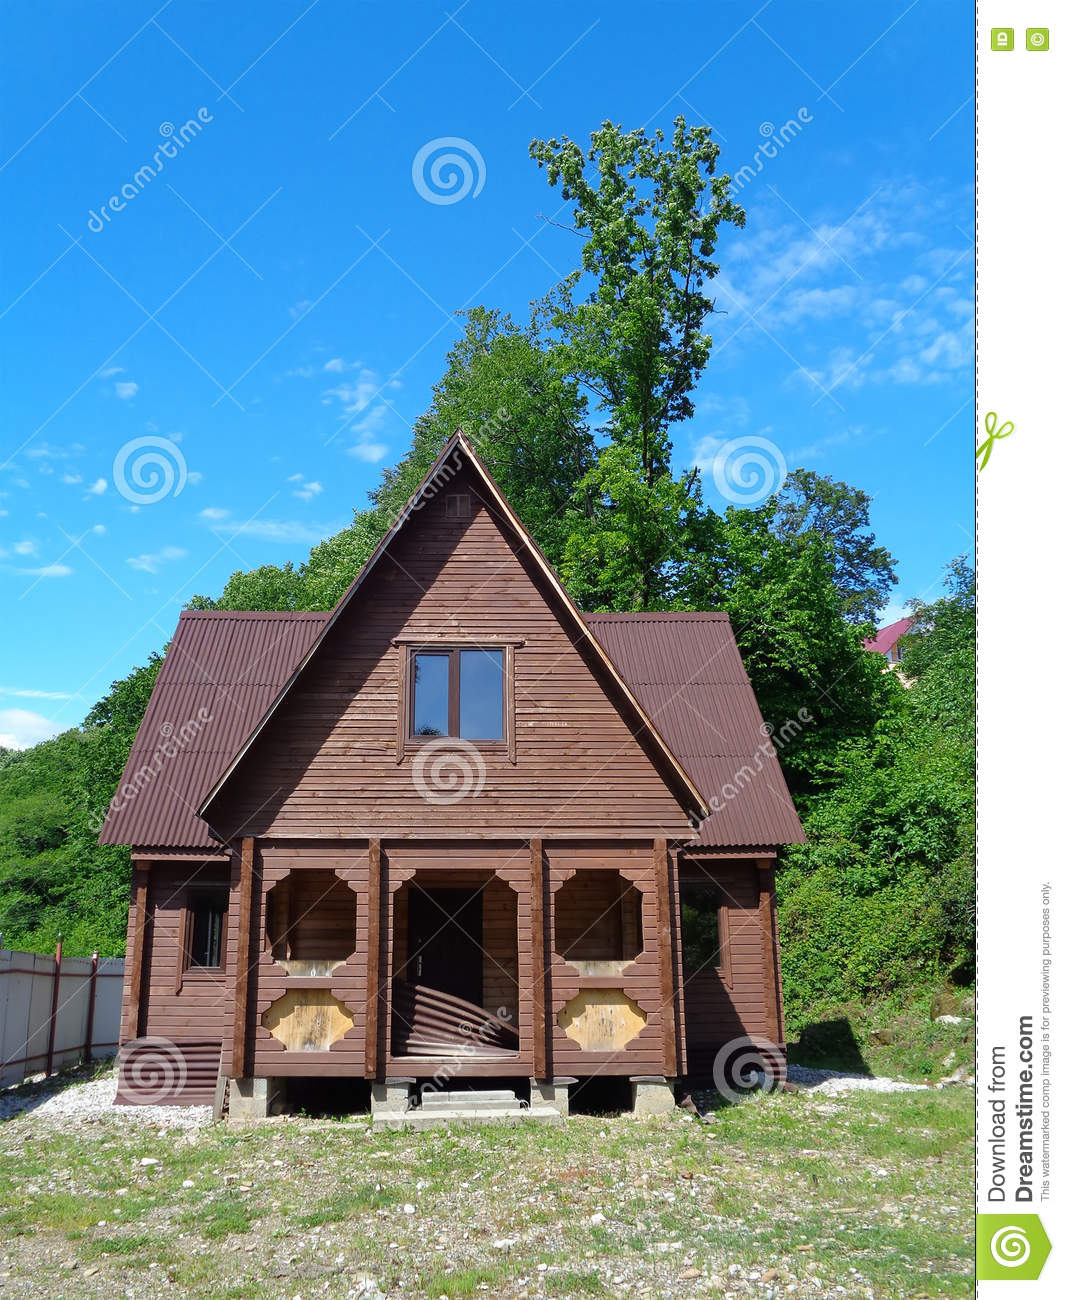 Wooden country house with land for sale stock photo for Country homes with acreage for sale